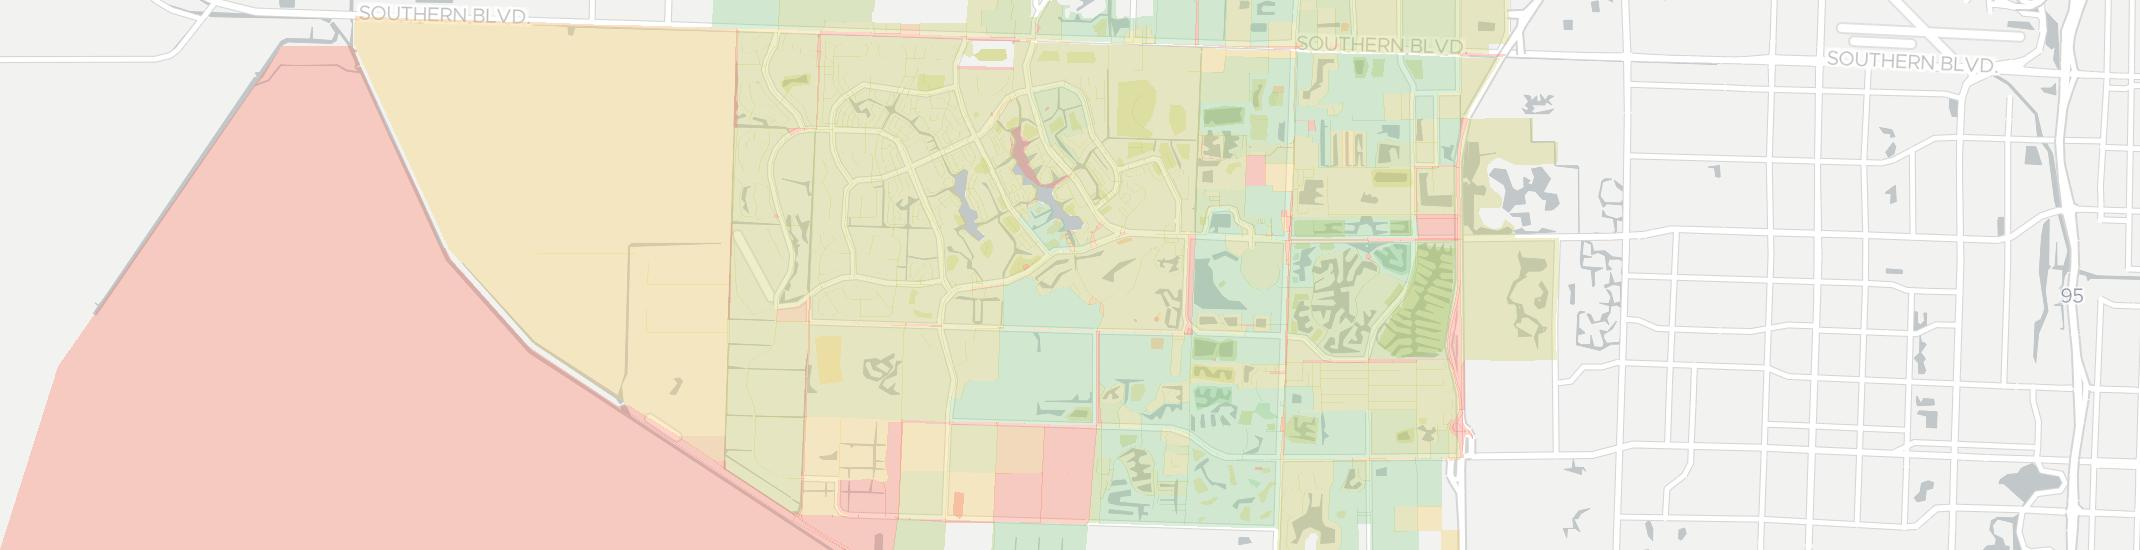 Map Of Wellington Florida.Wellington Has 15 Internet Service Providers Up To 1 000 Mbps